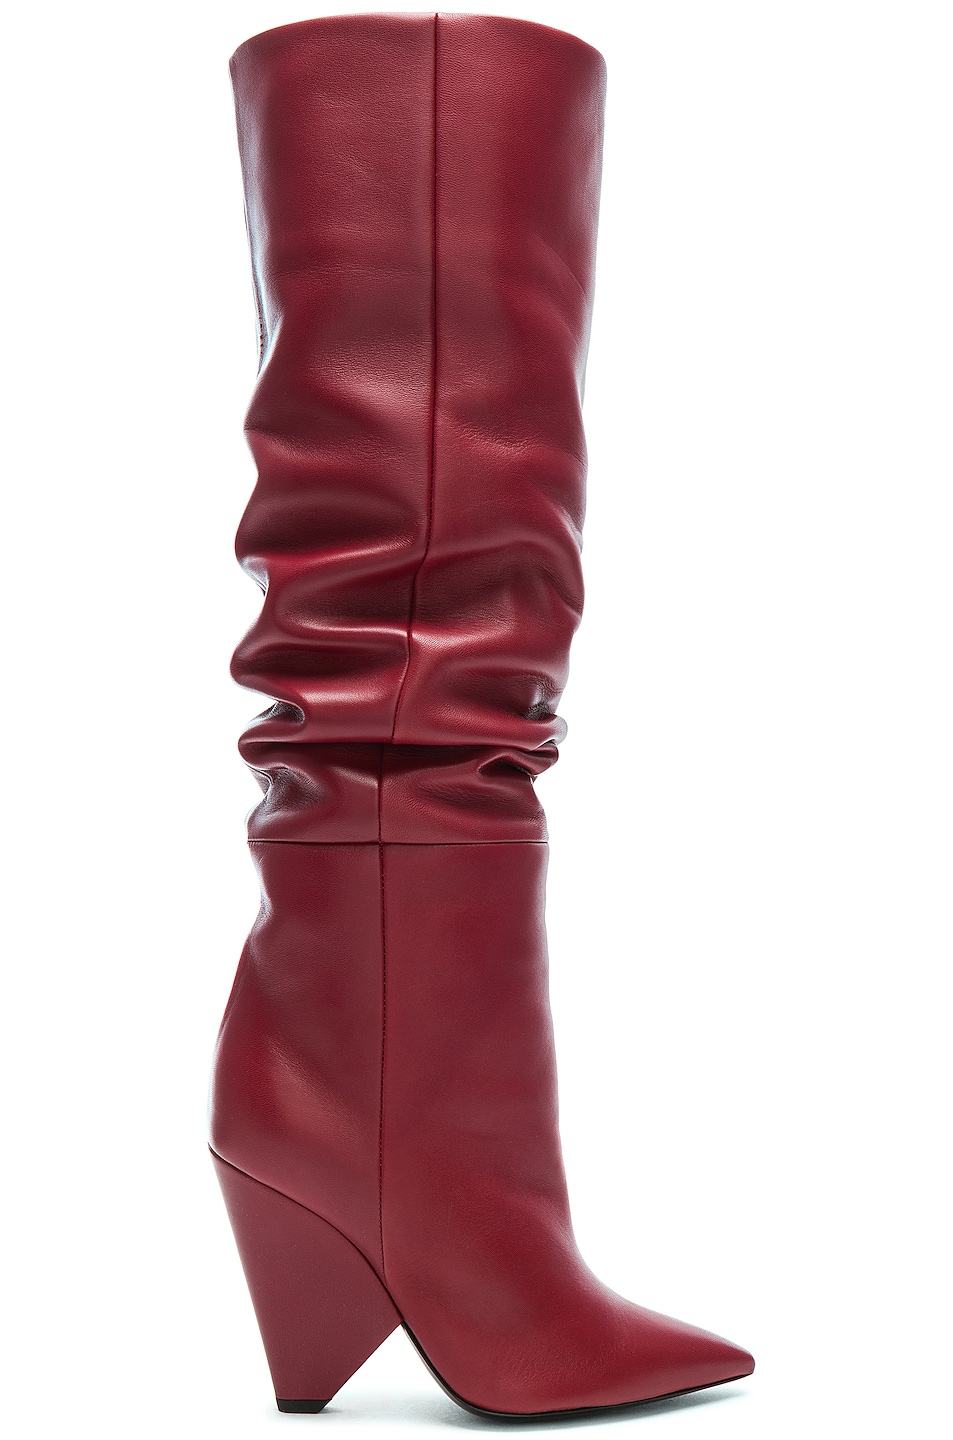 Saint Laurent Niki Thigh High Boots In Red